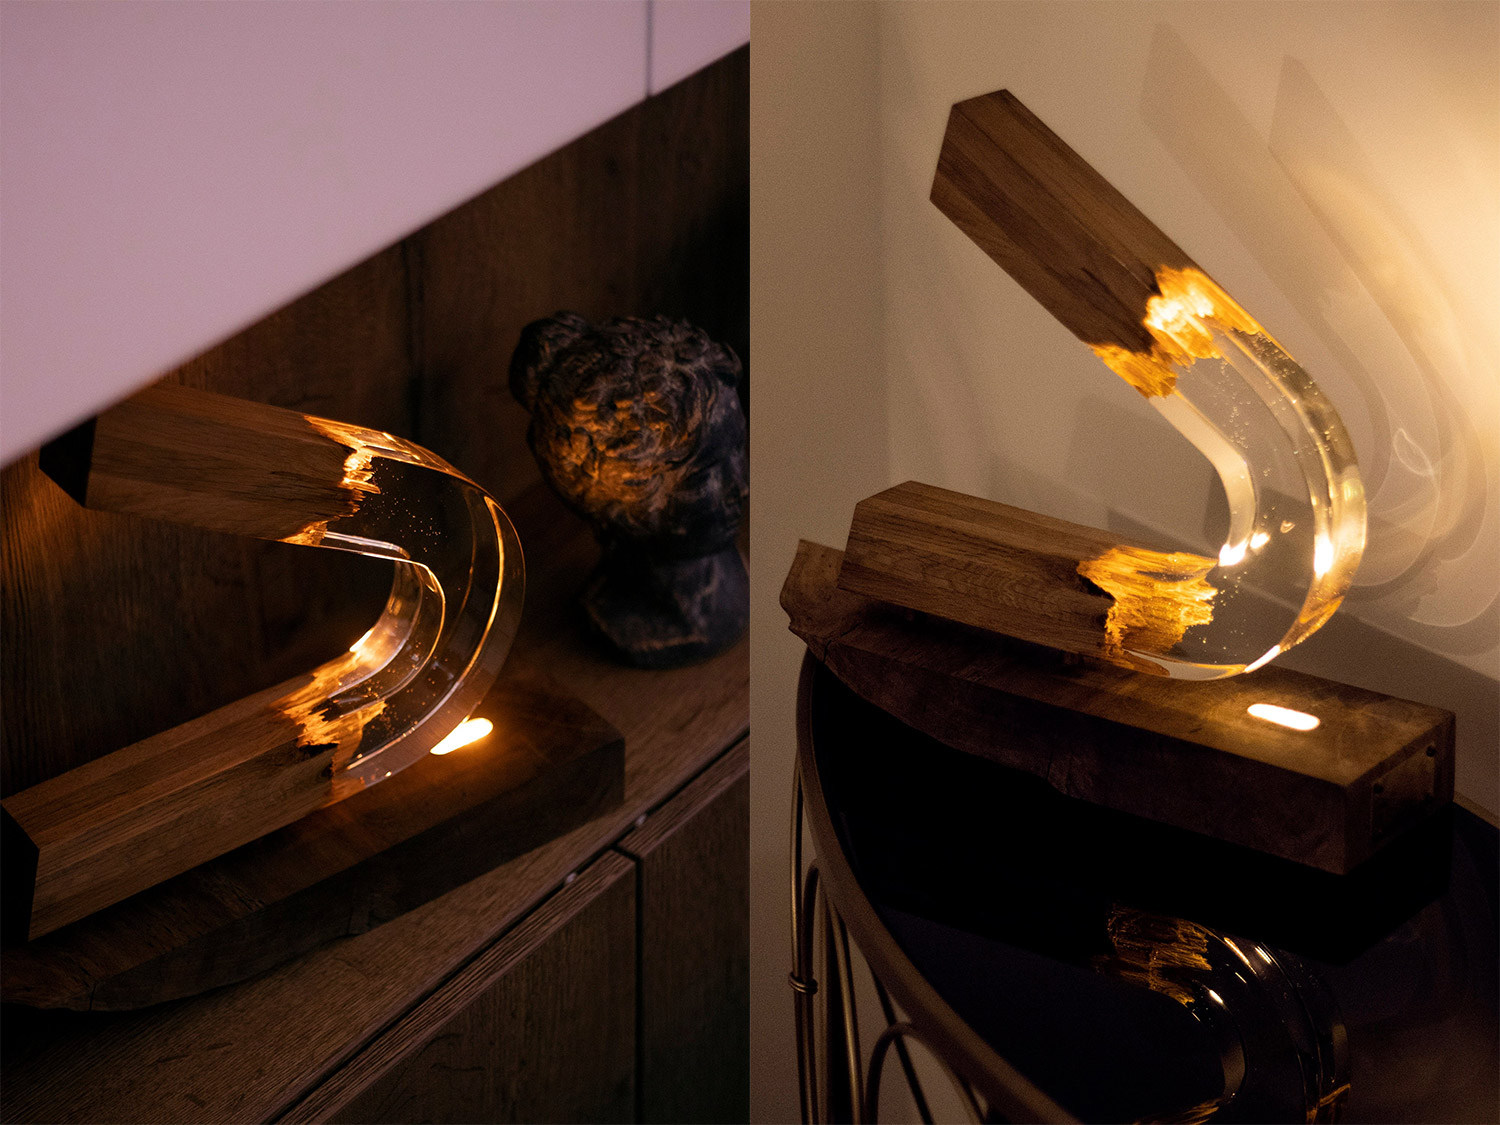 Beautiful Epoxy Wooden Lamps Made From a Broken Piece of Wood